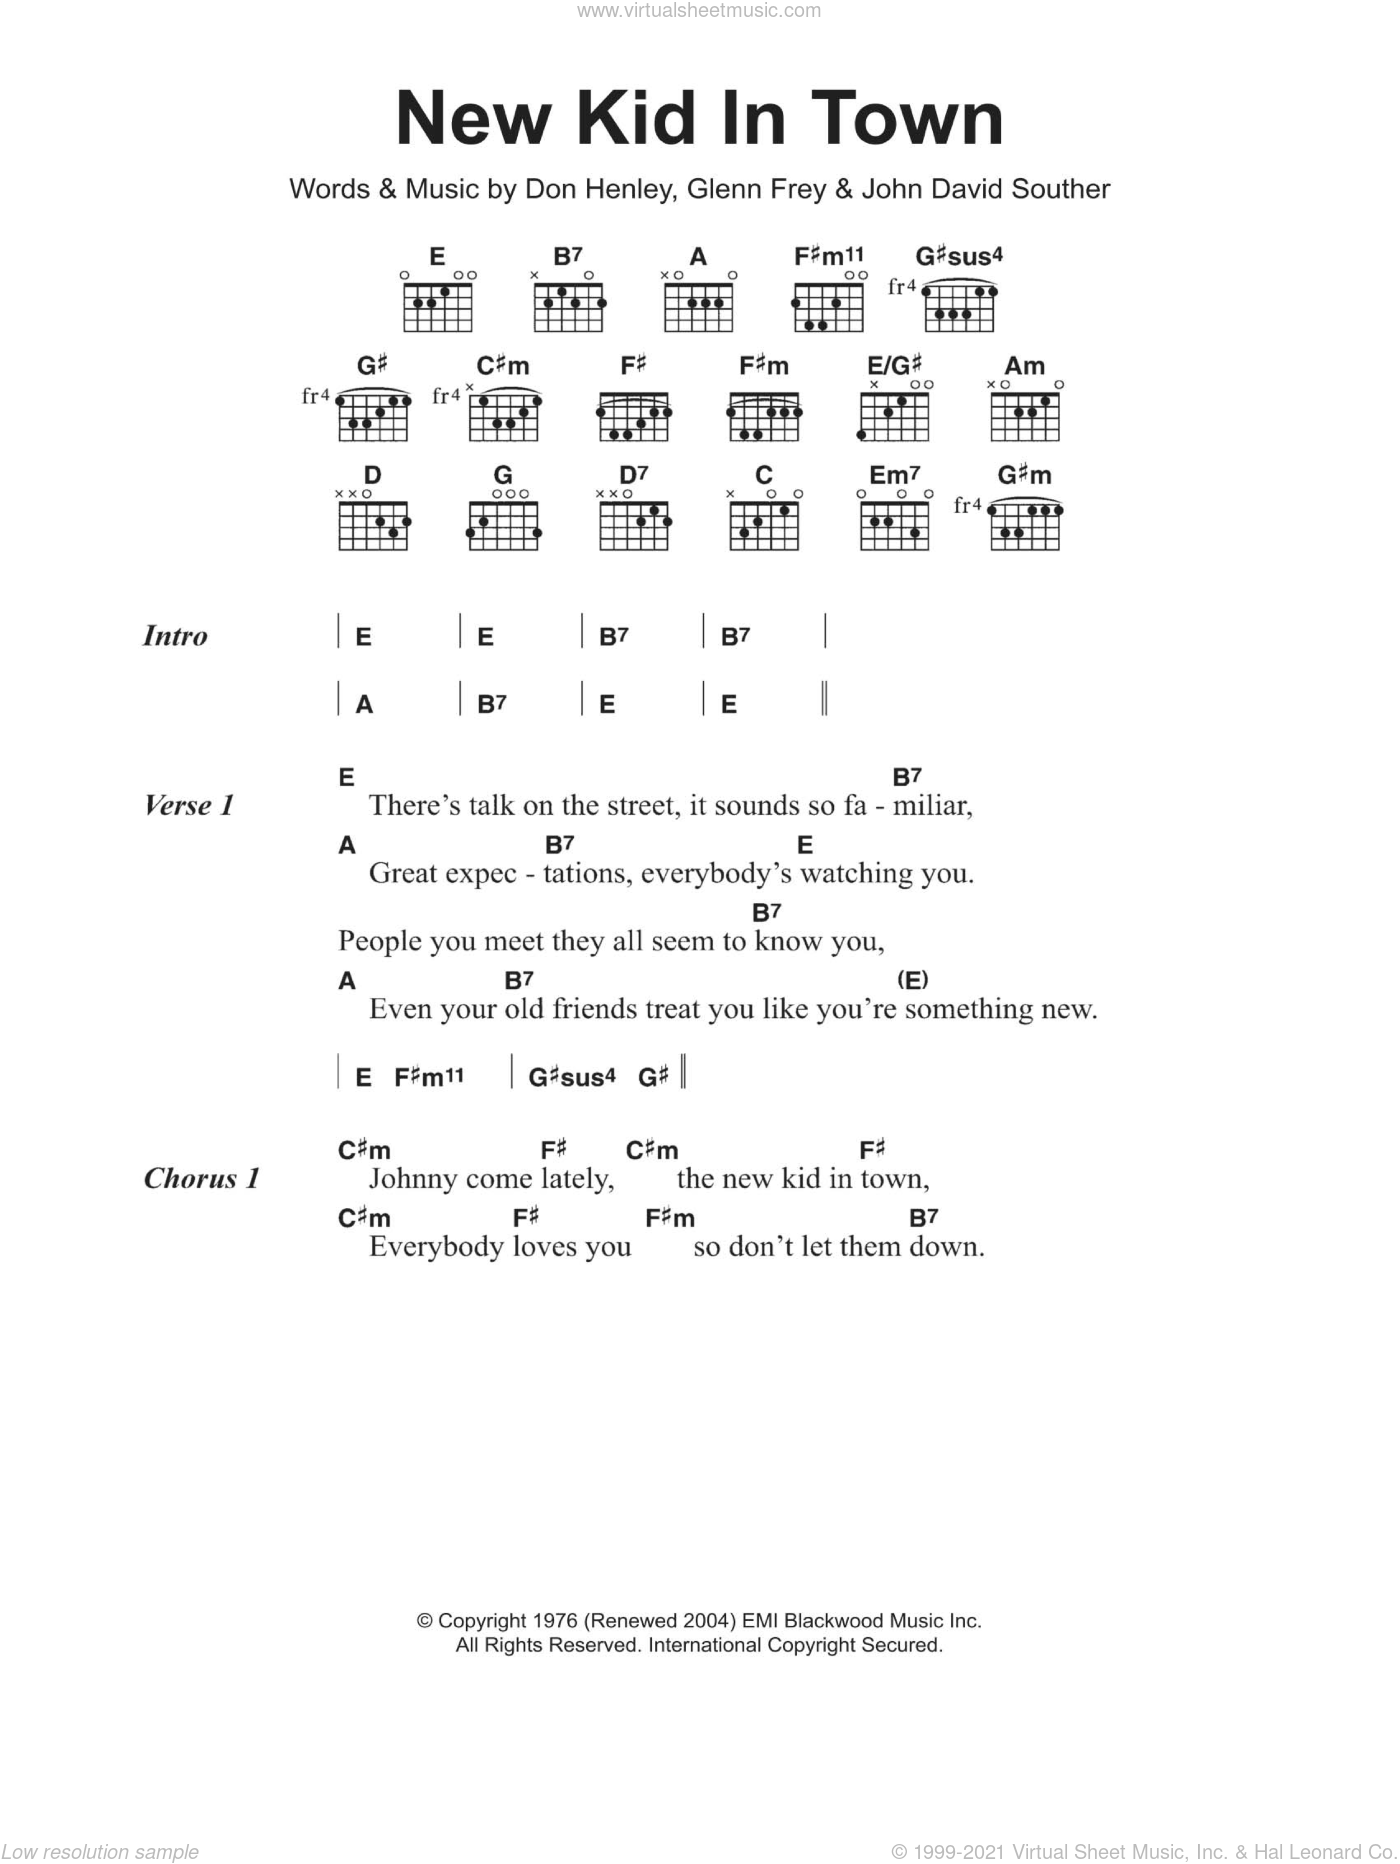 New Kid In Town sheet music for guitar (chords) by The Eagles, Don Henley, Glenn Frey and John David Souther, intermediate. Score Image Preview.